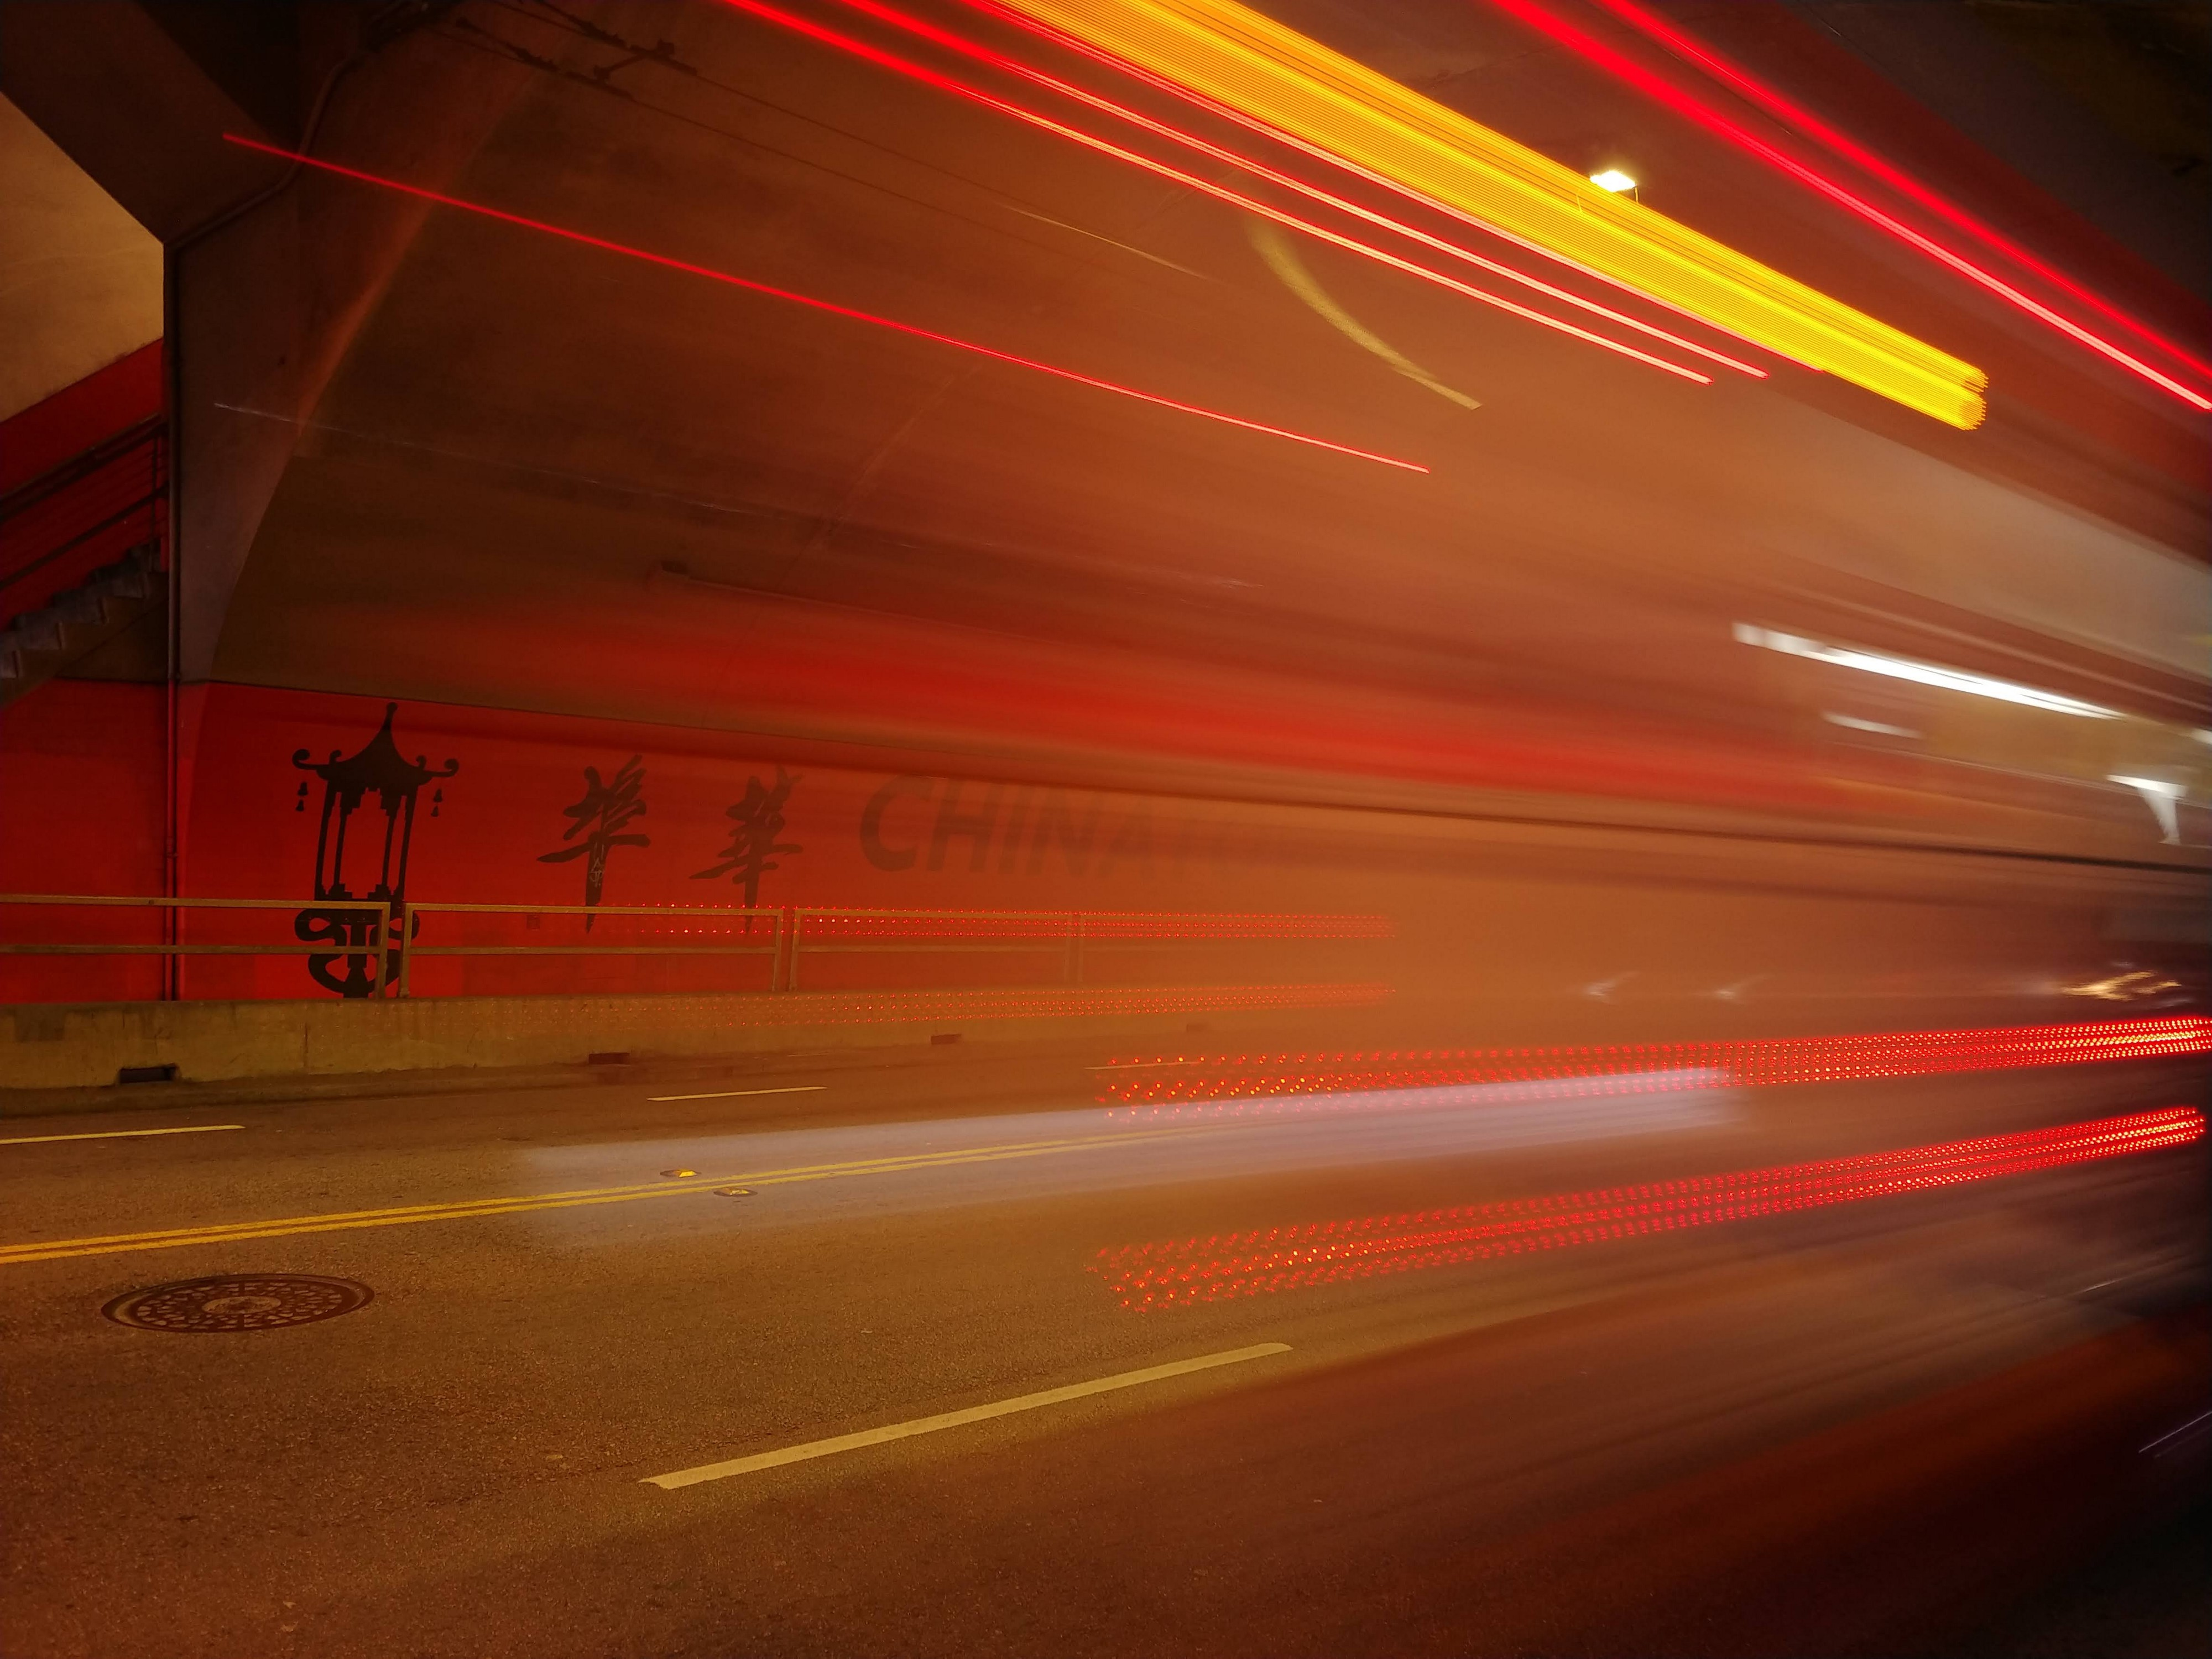 A long exposure shot of a moving vehicle inside a subway.